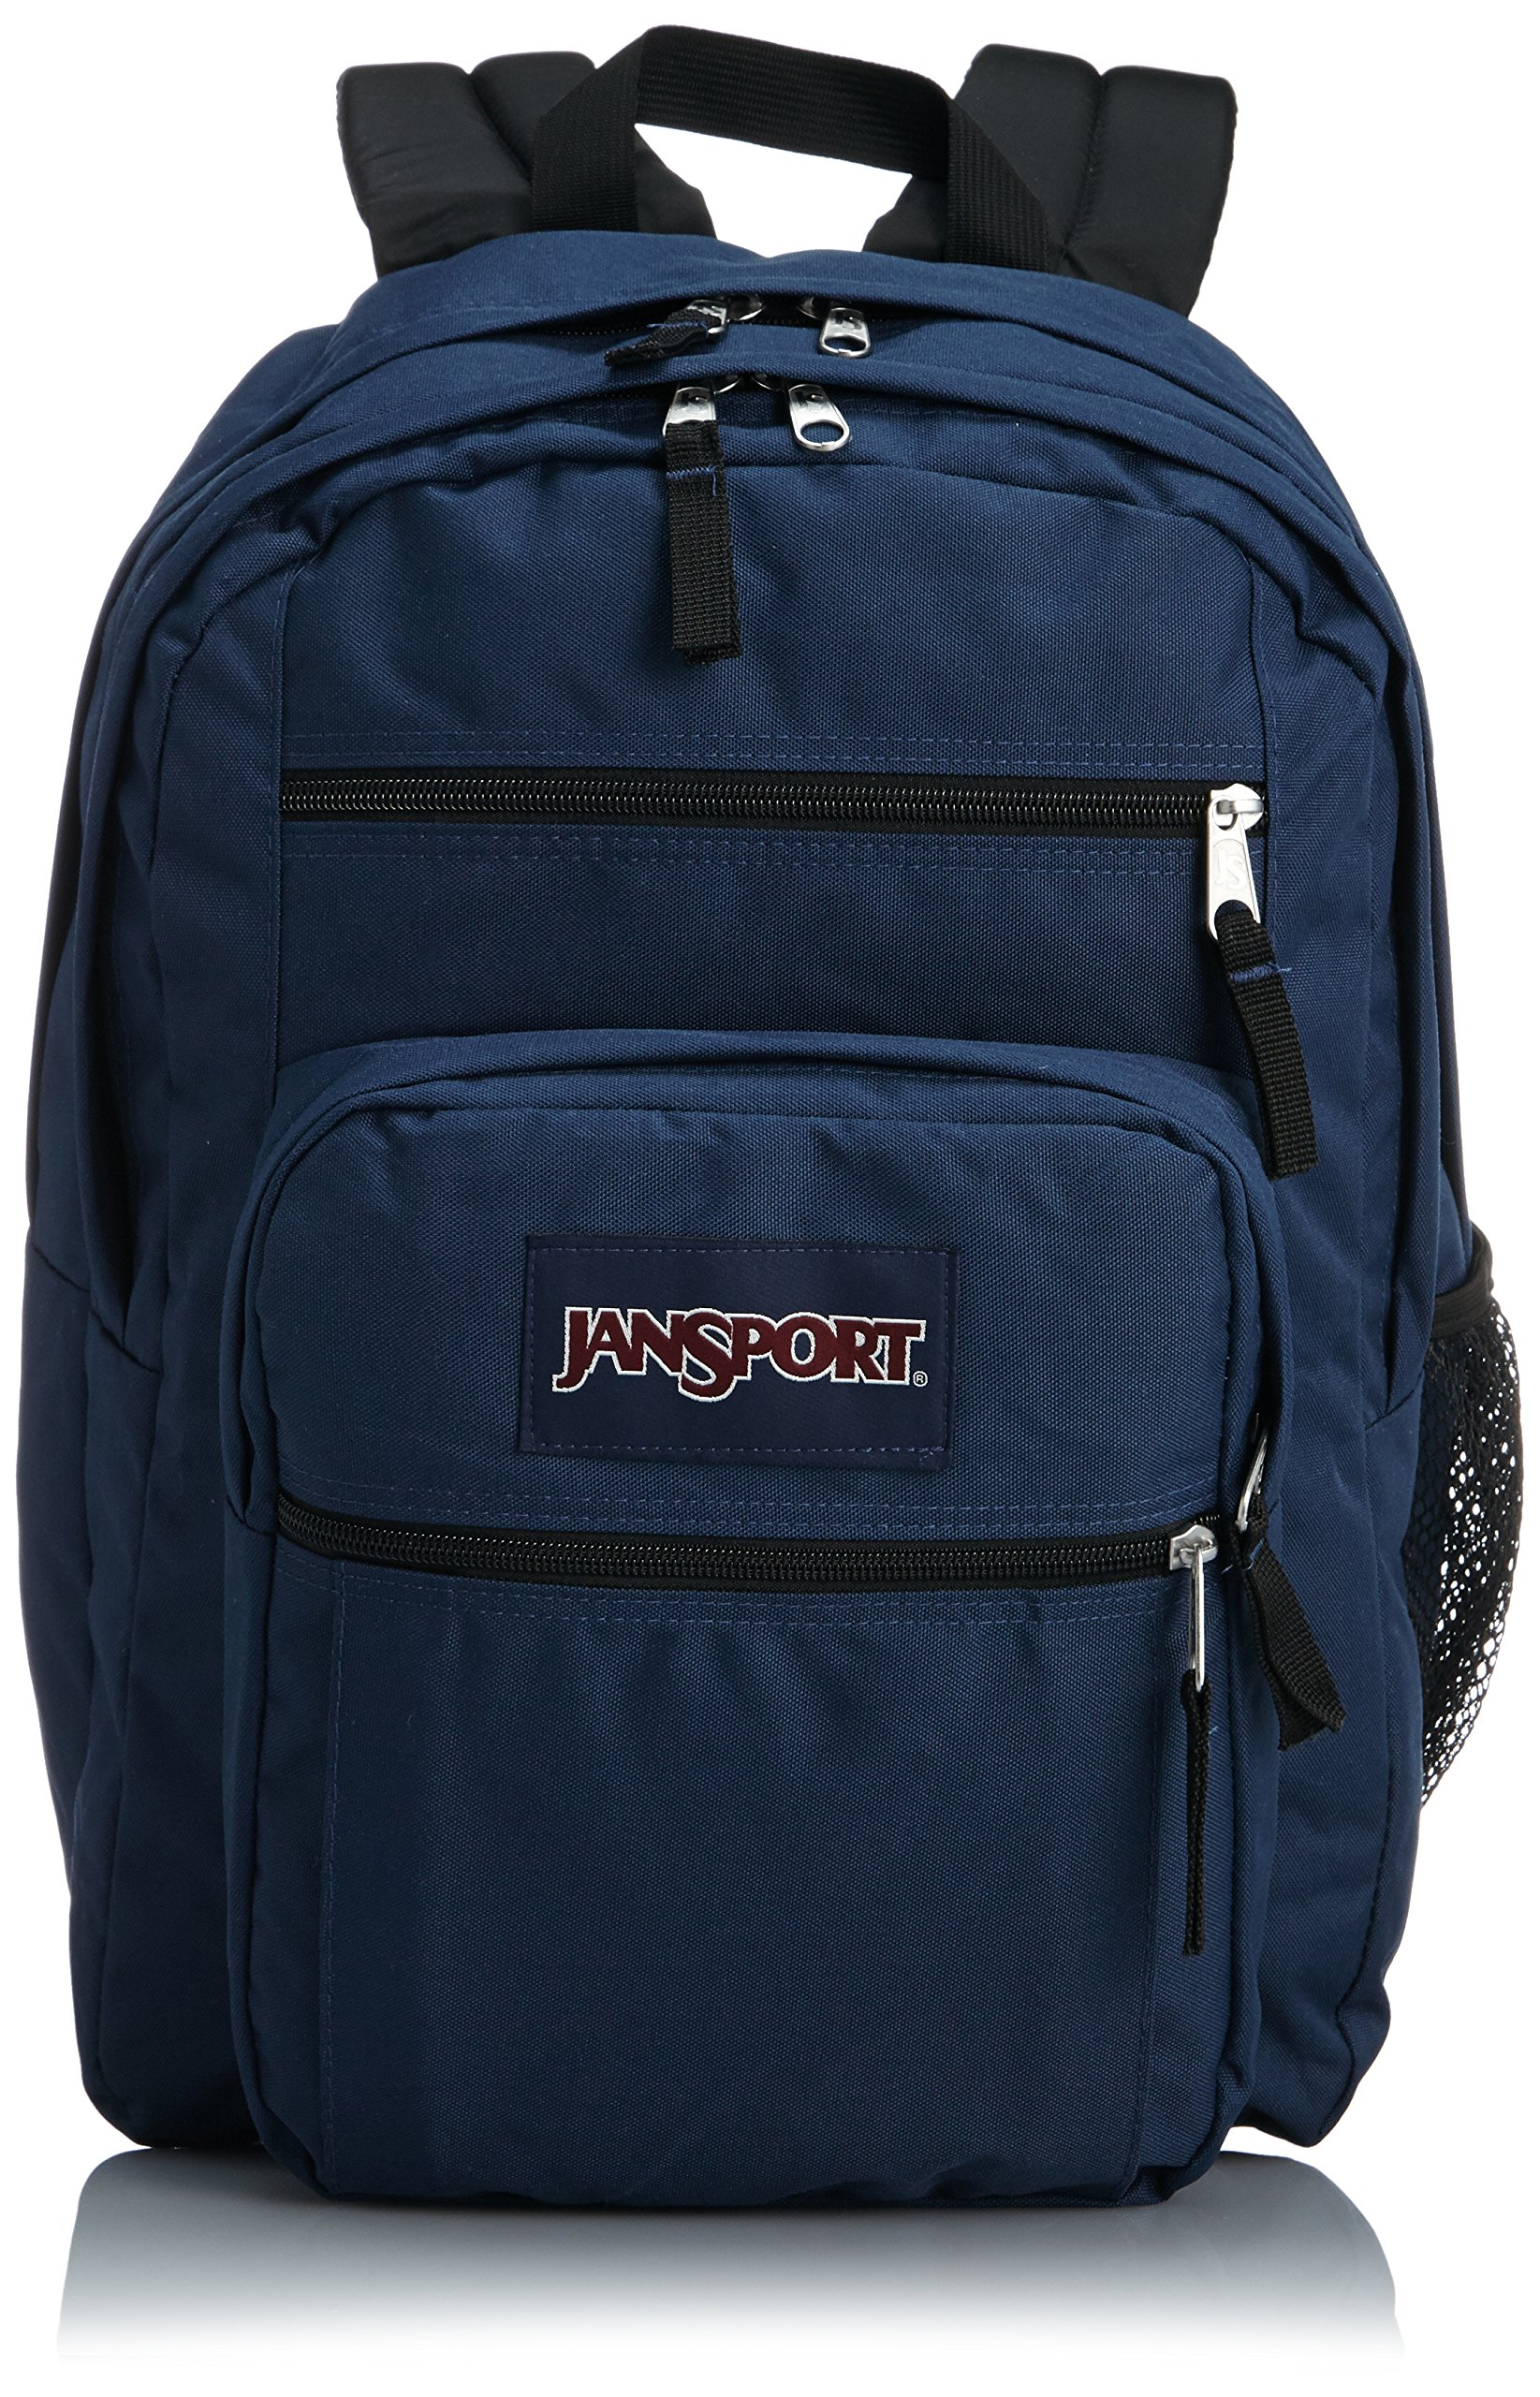 JanSport Big Student Classics Series Backpack - Navy by JanSport (Image #2)